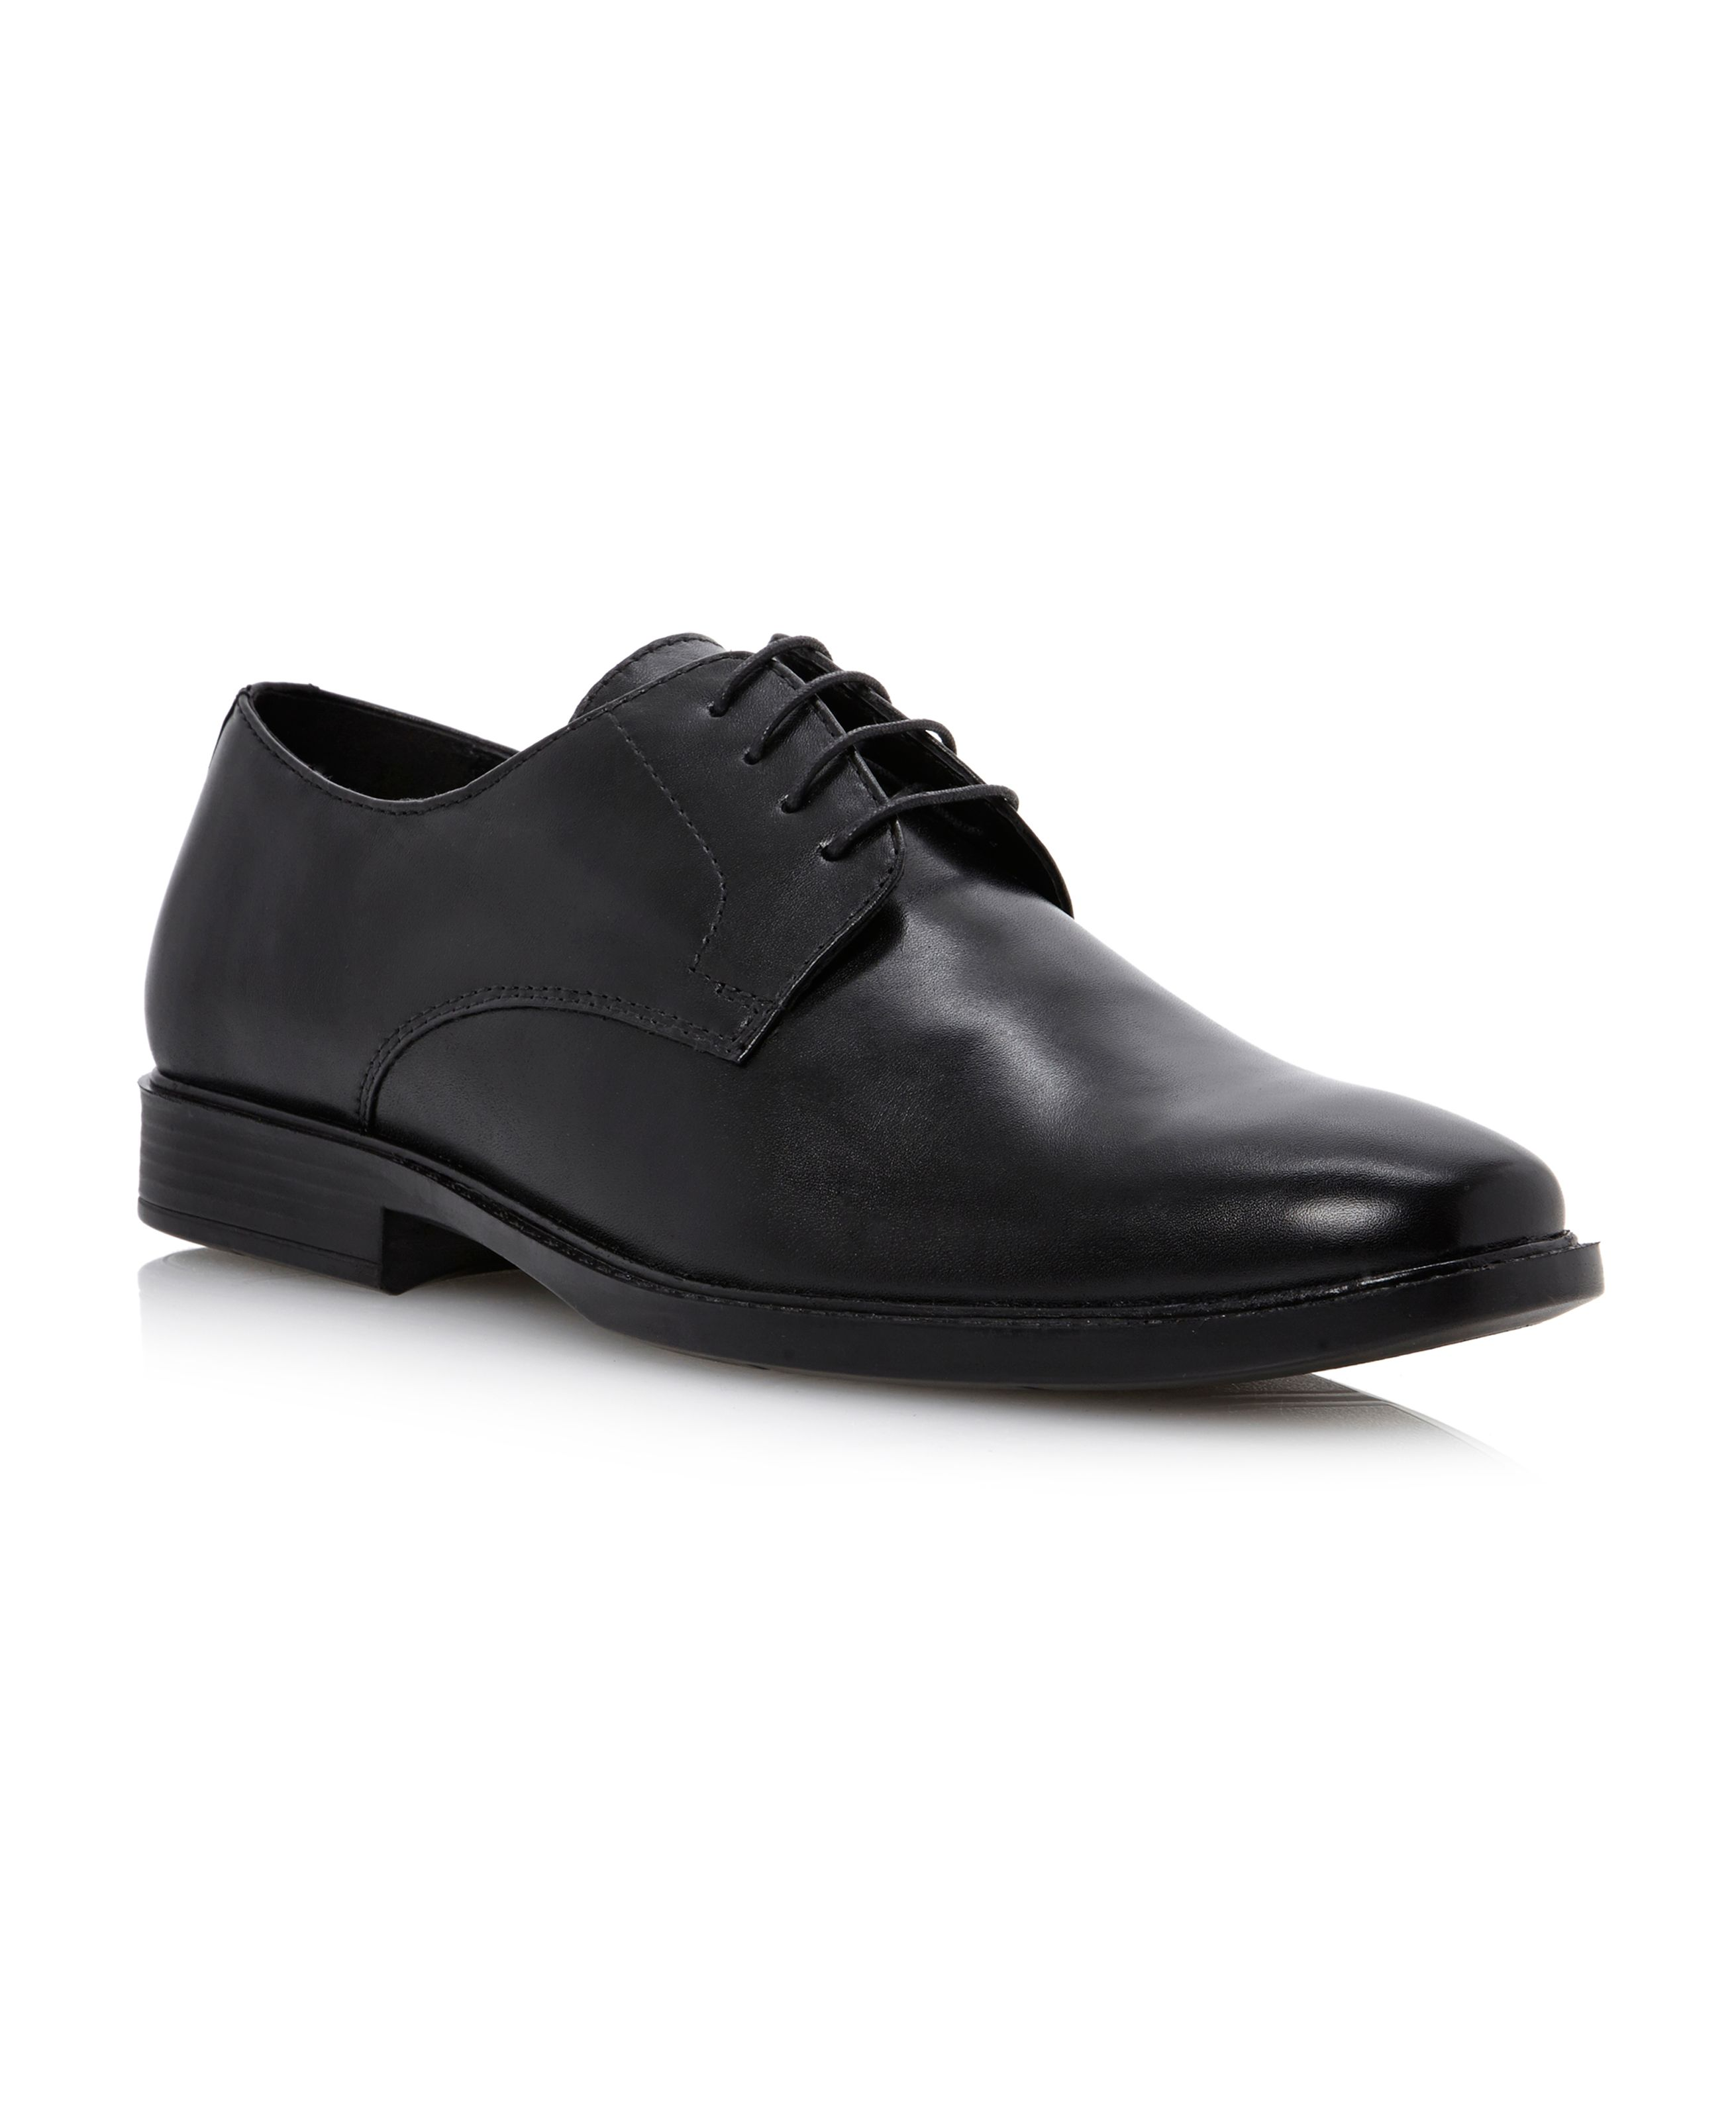 Chancery lane-lace up comfort gibson